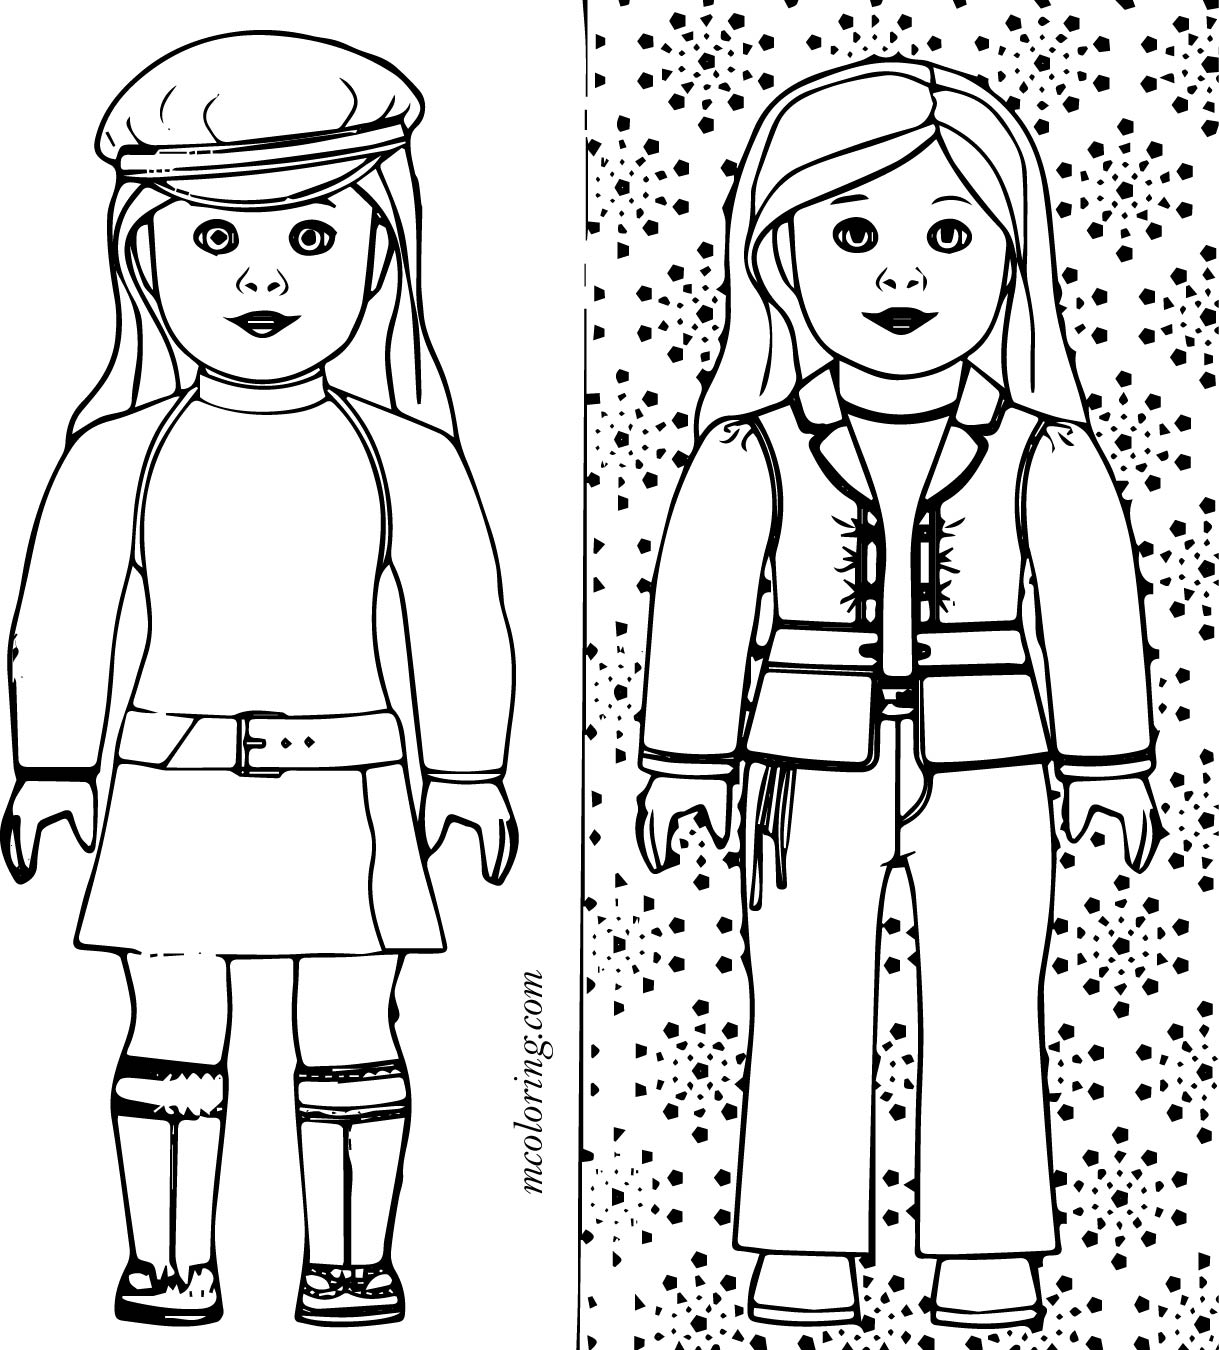 Free Printable American Girl Doll Coloring Pages At